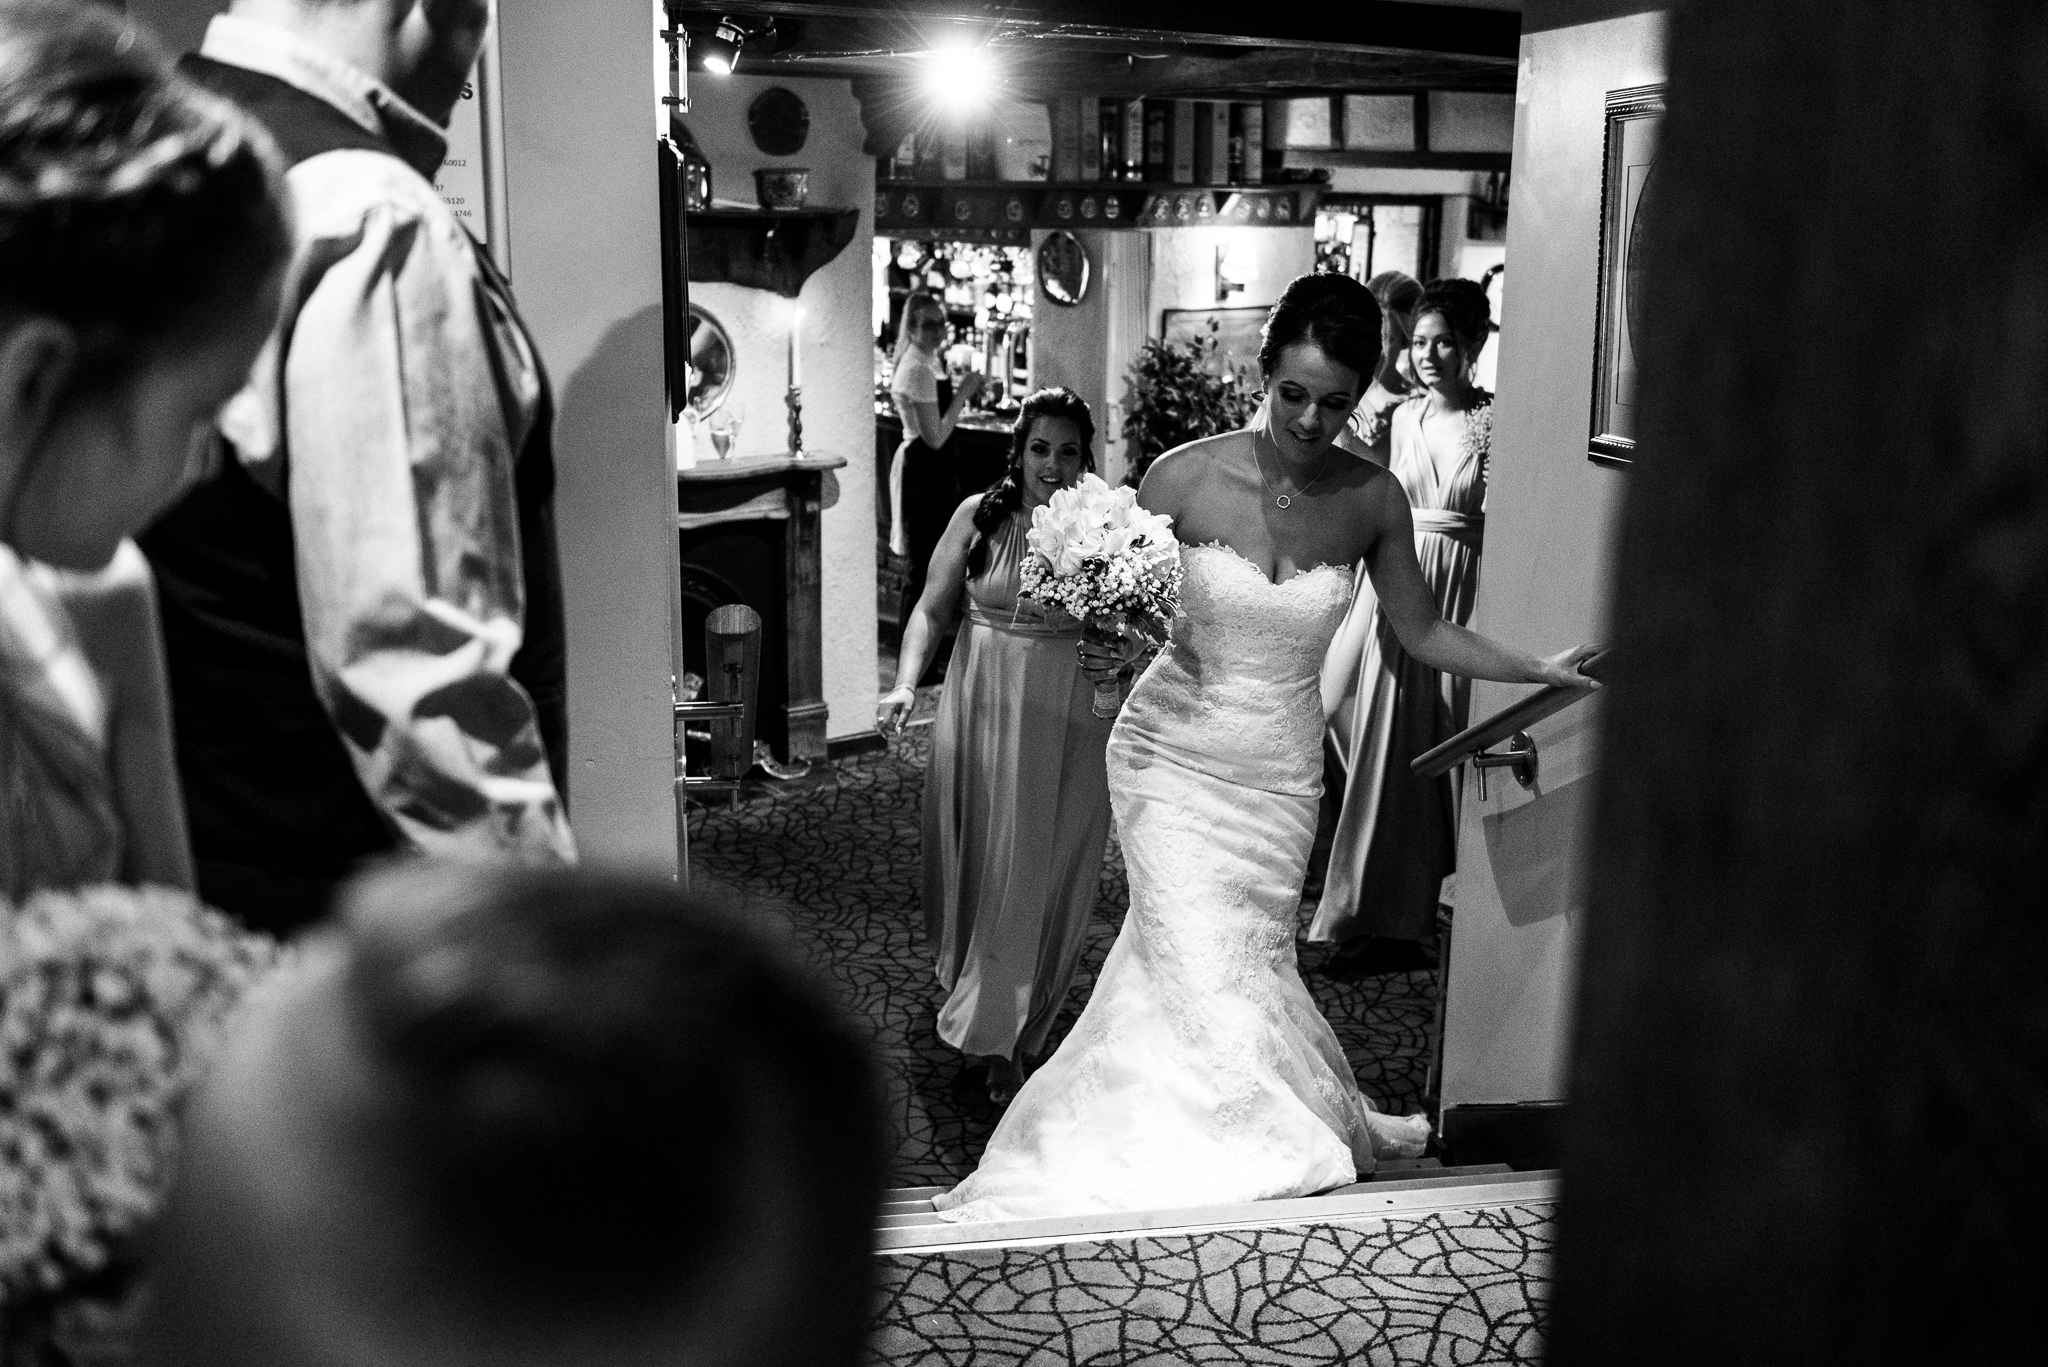 Staffordshire Moorlands Documentary Wedding Photography at The Three Horseshoes, Blackshaw Moor - Jenny Harper-16.jpg